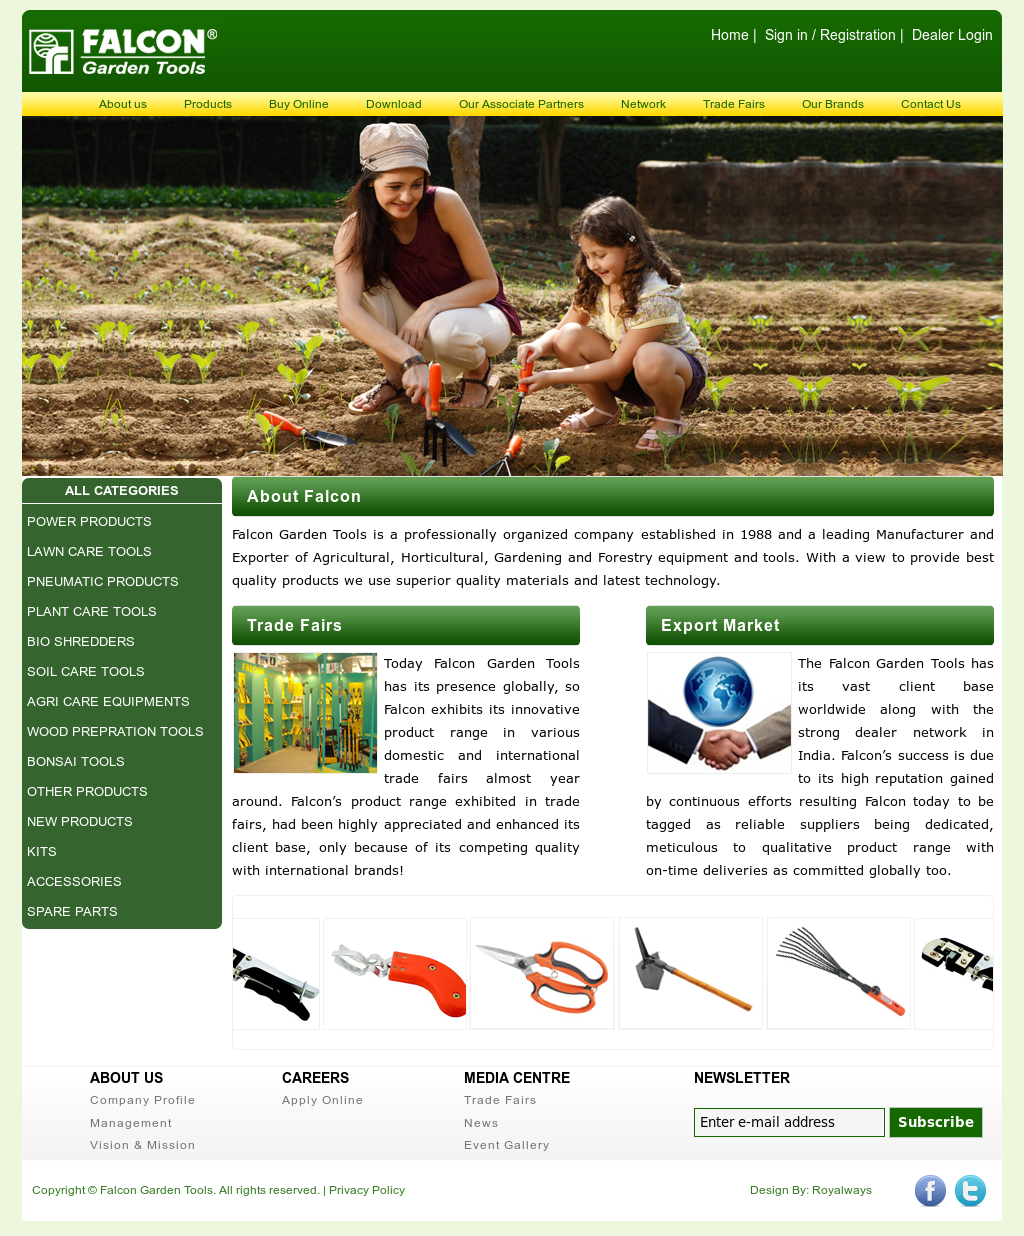 Falcon Garden Tools Competitors, Revenue and Employees - Owler